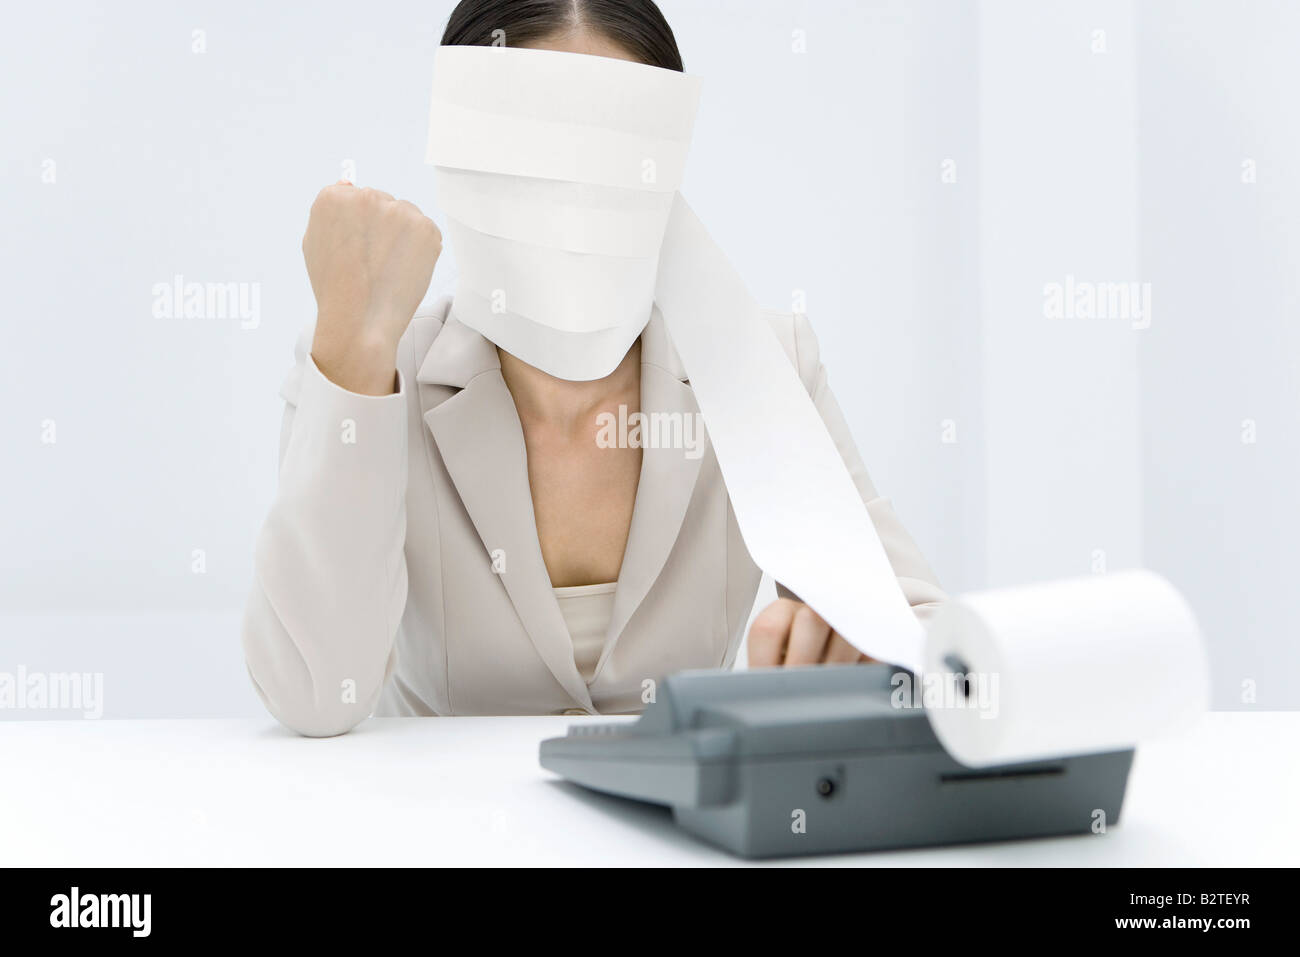 Woman sitting at desk, tape from an adding machine wrapped around her head, clenching fist - Stock Image